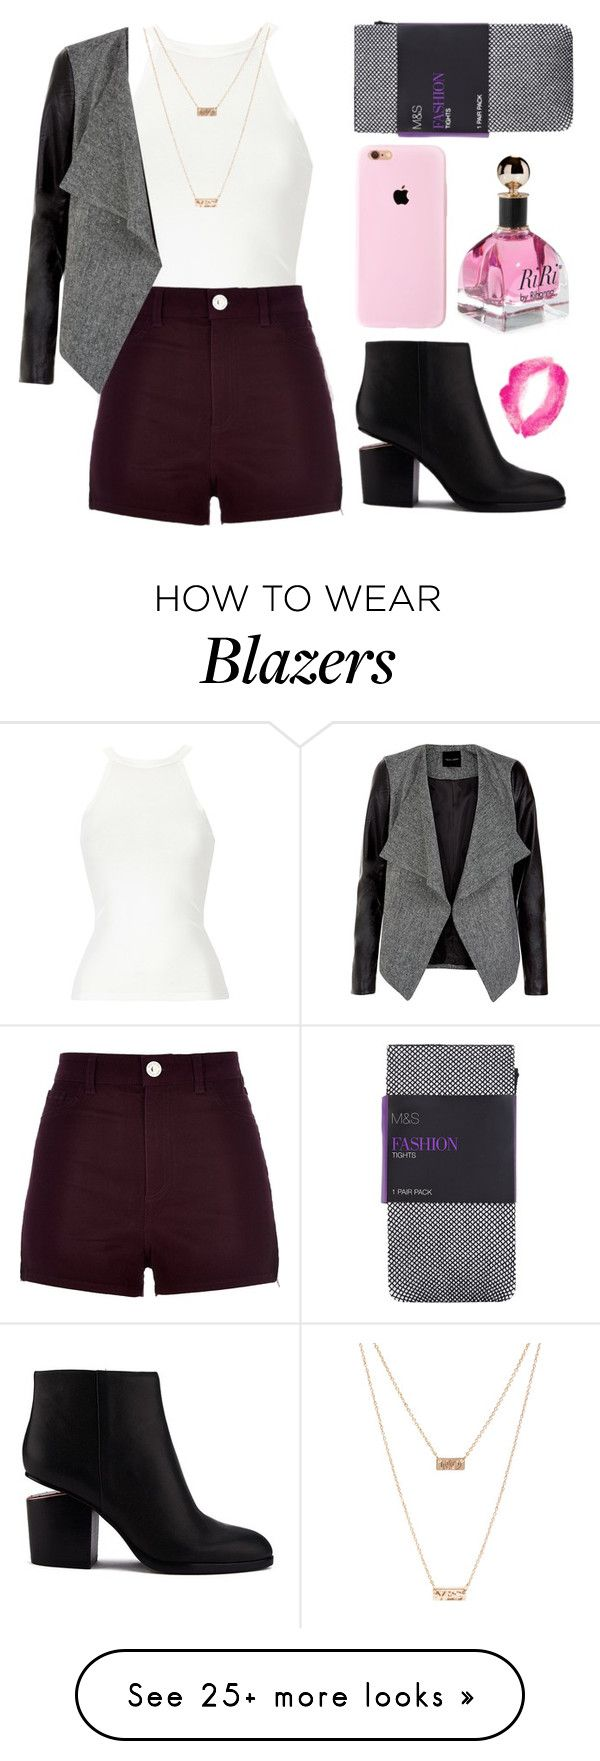 """Fame changes you"" by zzeelleestyles on Polyvore featuring River Island, Alexander Wang, Topshop and ASOS"